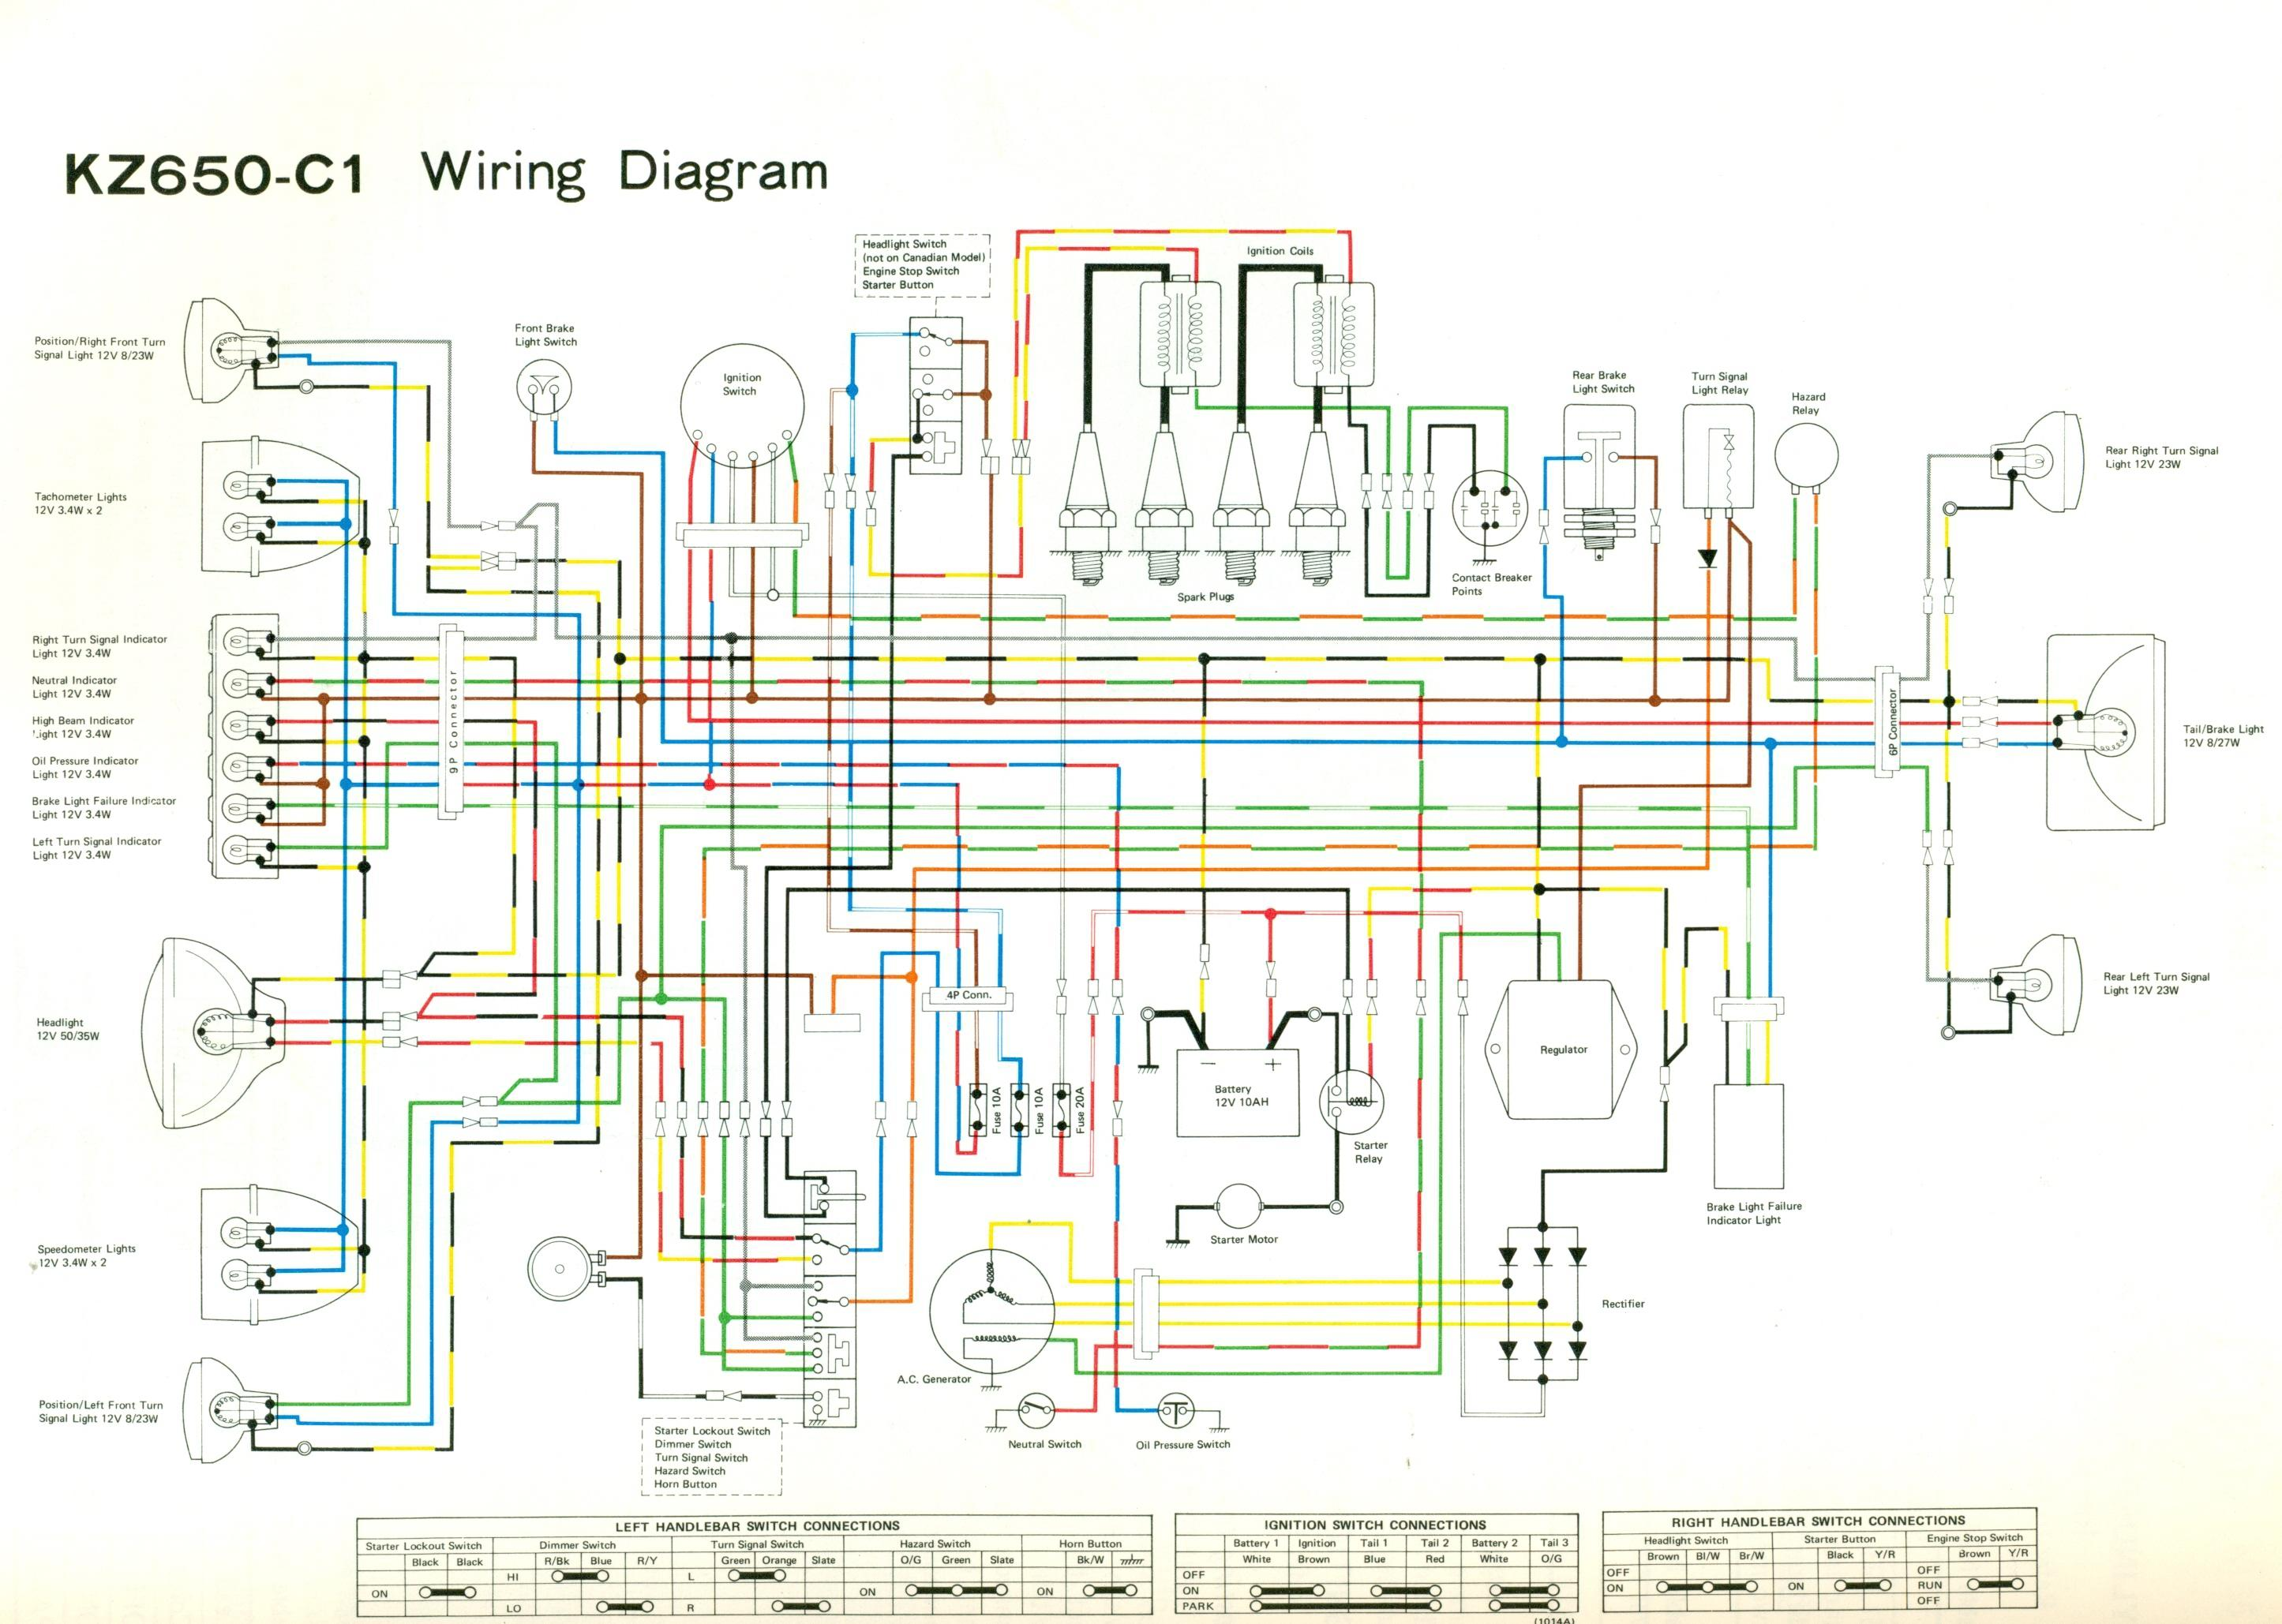 1128012 Engine Break In Stand Wiring Critique also mon Upgrades For An La318 In A 1971 Dodge Dart Swinger additionally Watch furthermore Bunker Hill Security Camera Wiring Diagram together with 1986 Fleetwood Southwind Motorhome Fuel Tank Diagram. on 1975 dodge wiring diagram